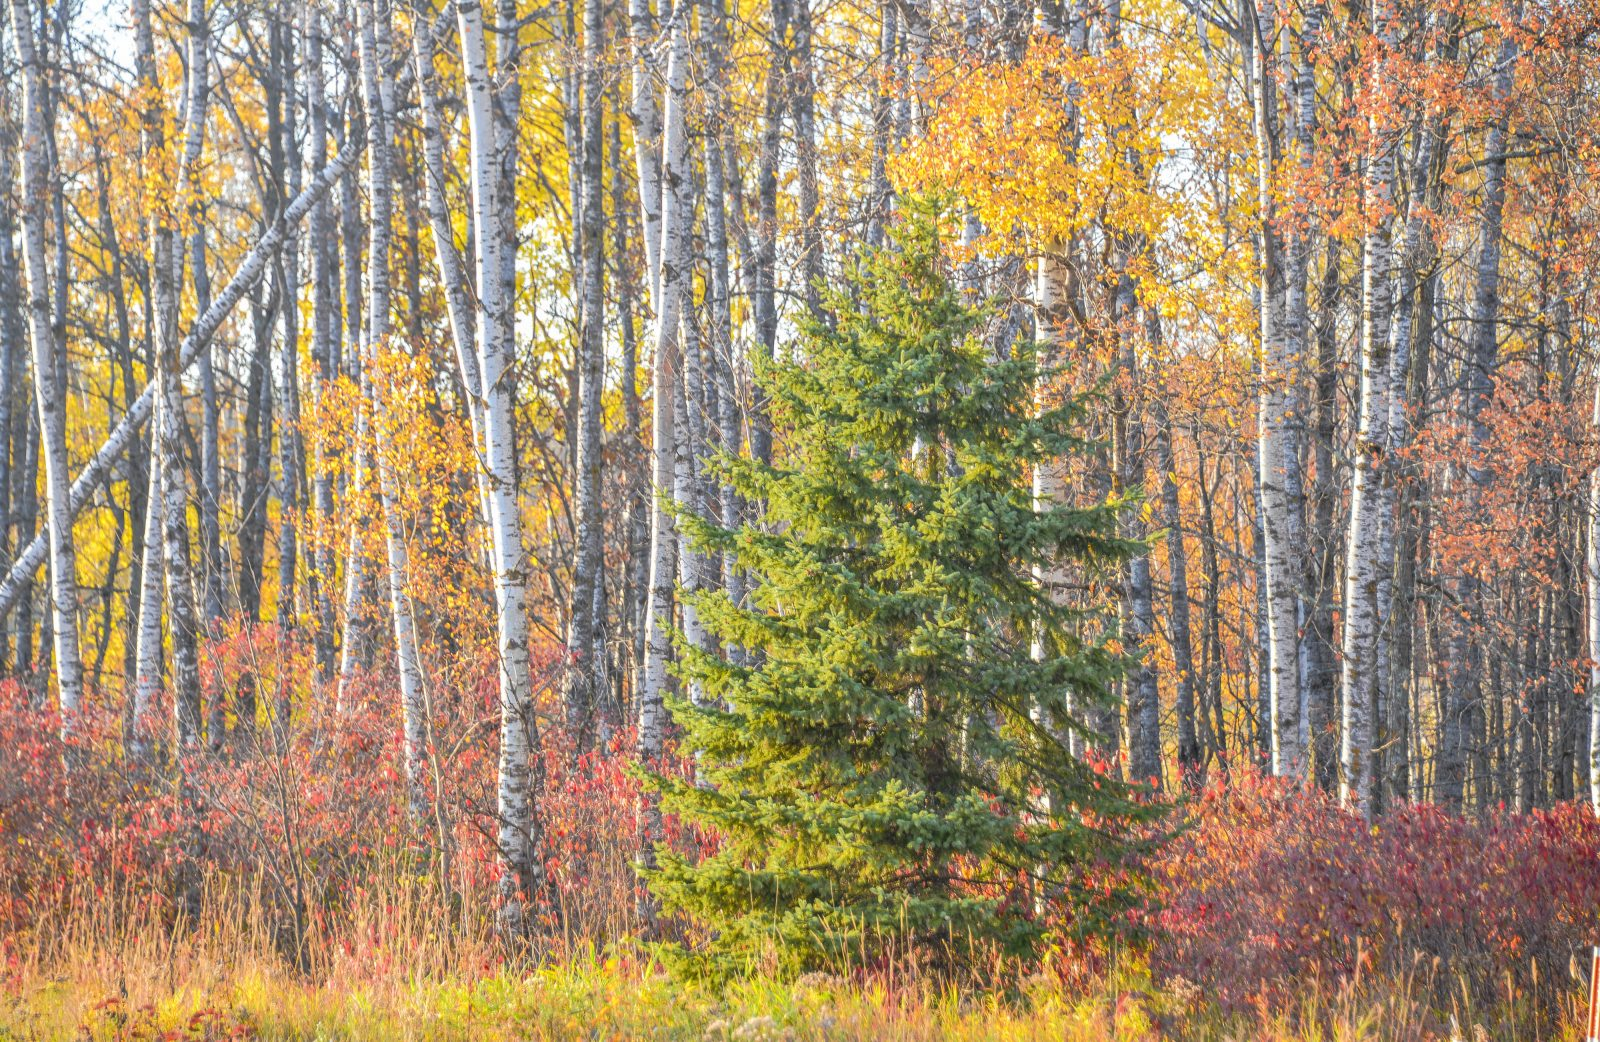 Birch Trees Surrounded by Color